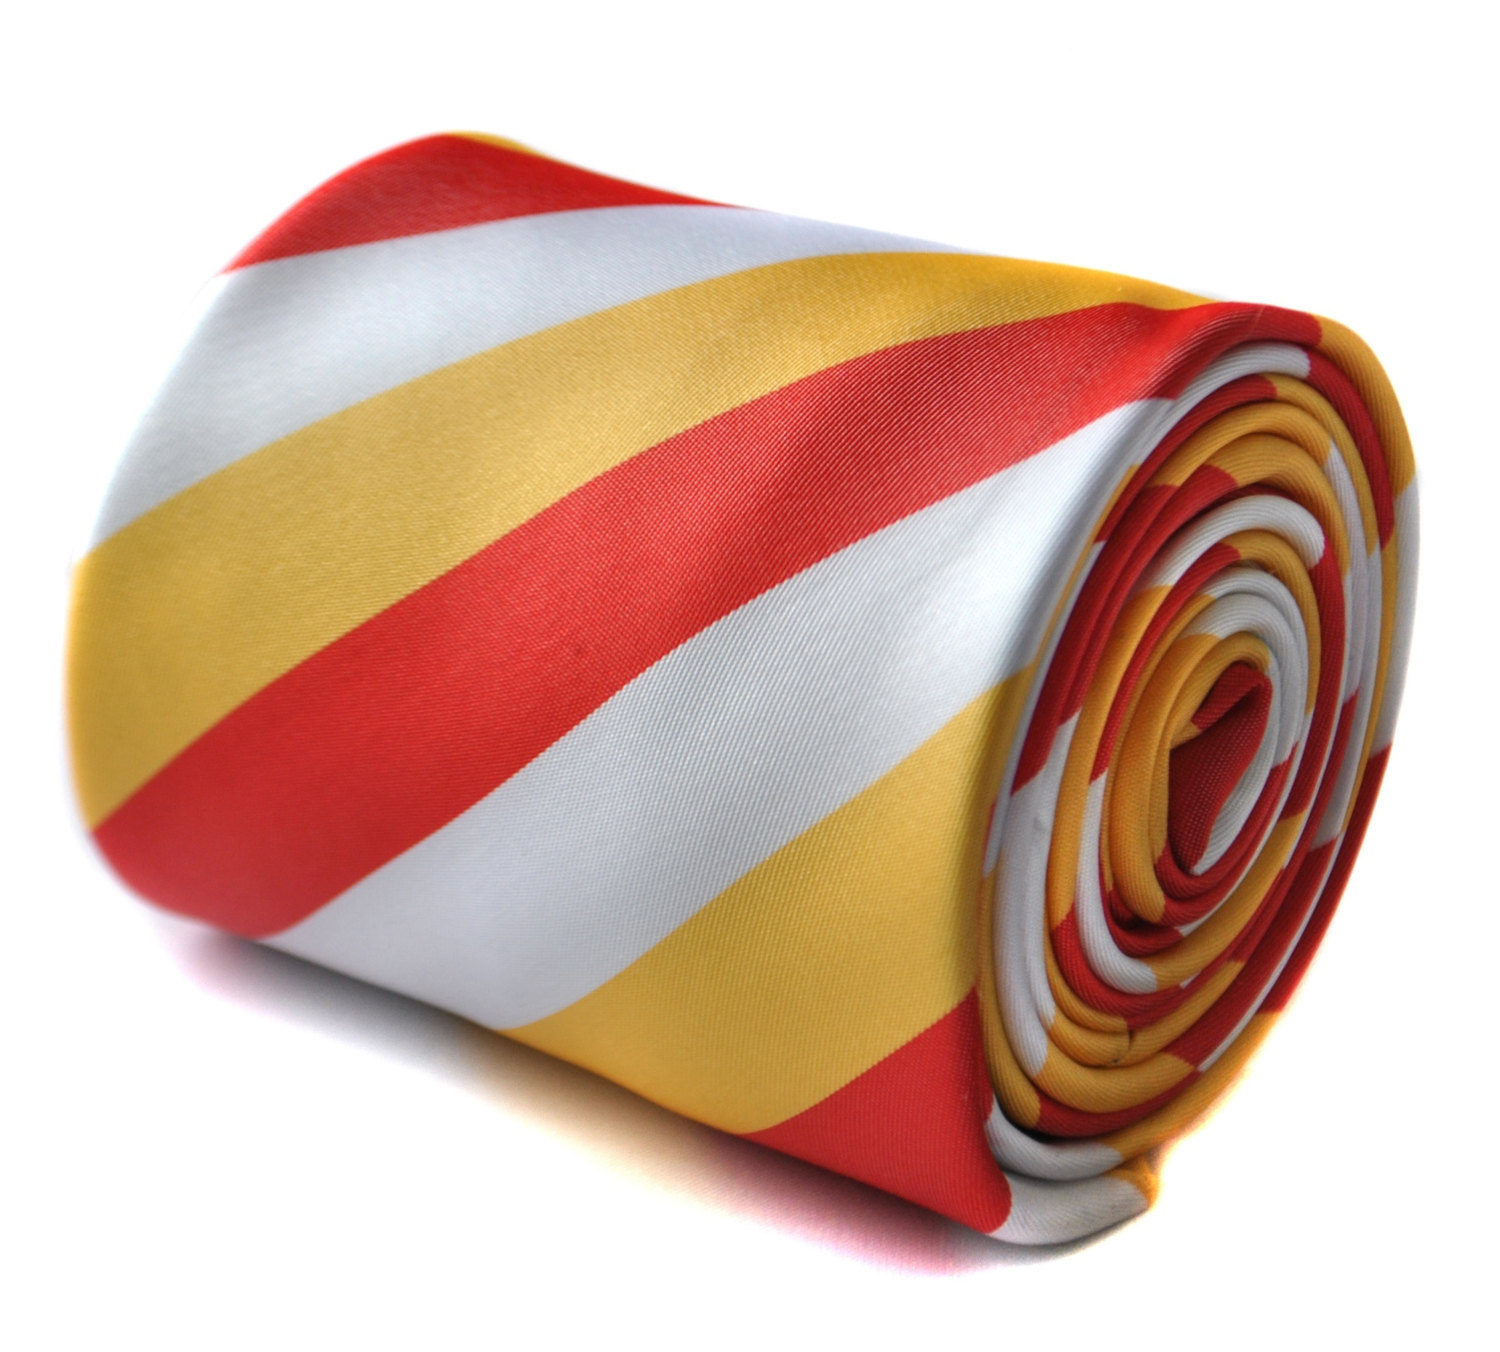 Red, yellow and white striped tie with signature floral design to the rear by Fr